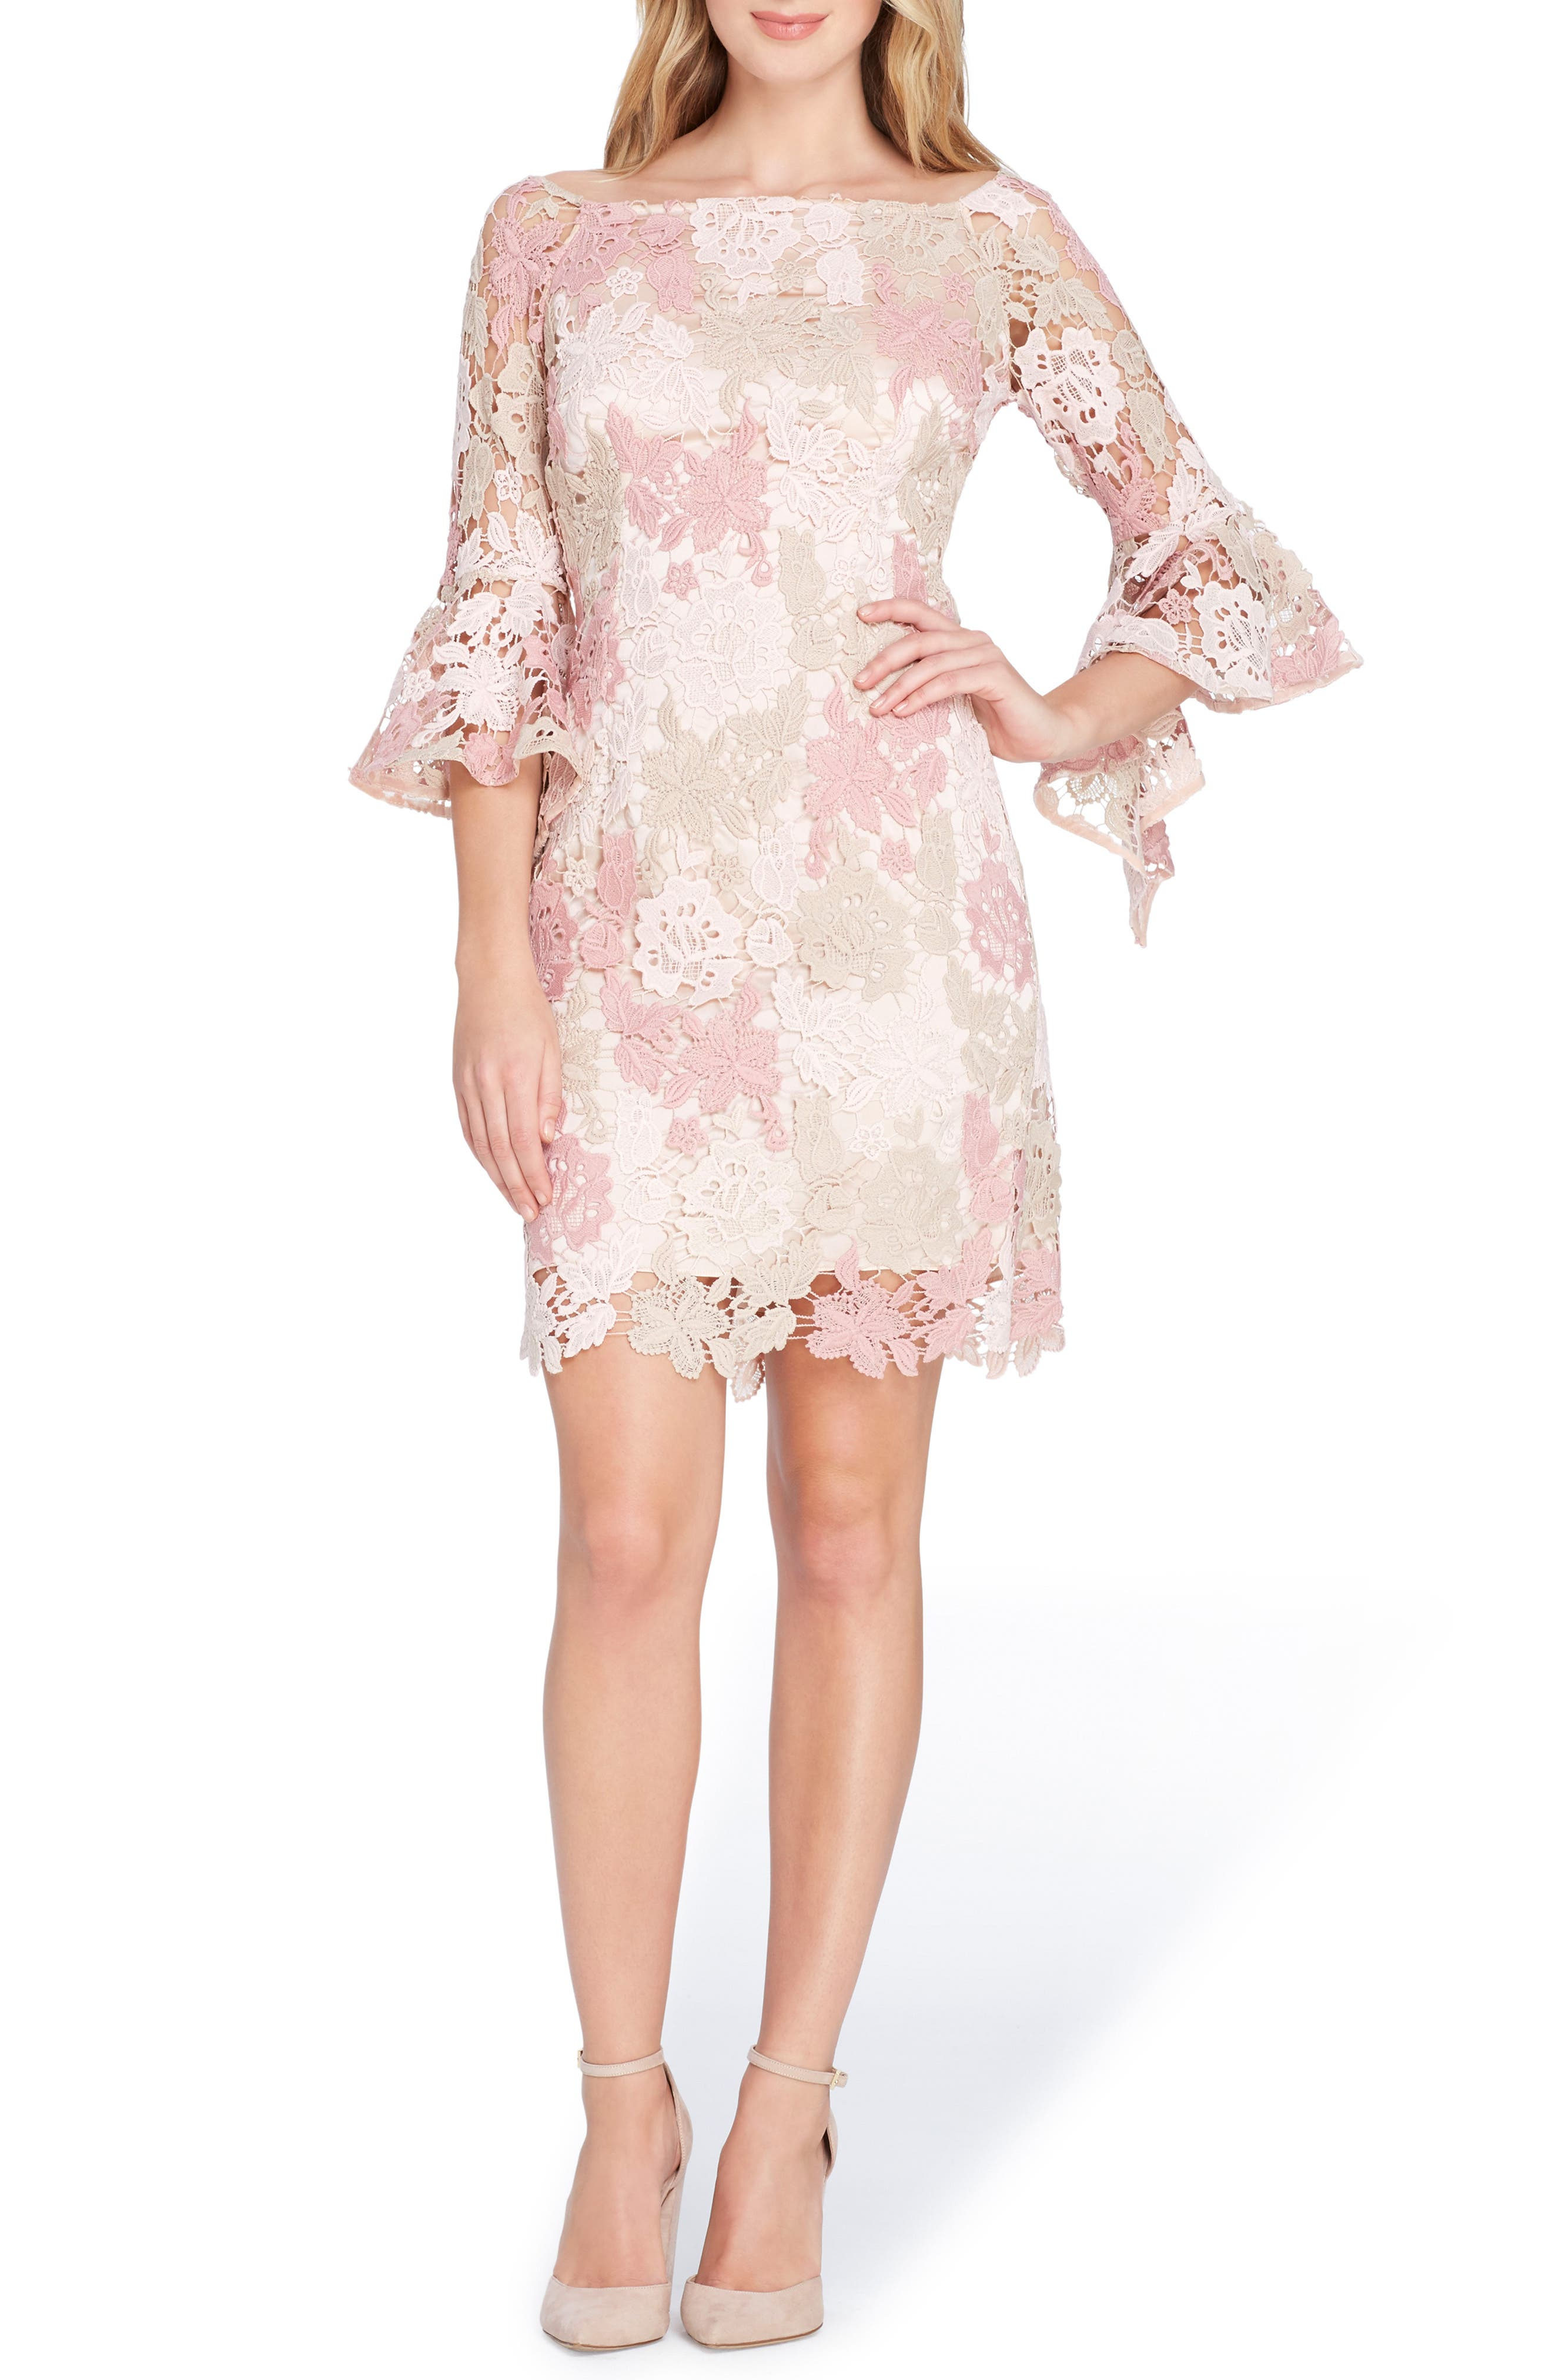 Lace Bell Sleeve Sheath Dress,                         Main,                         color, Blush/ Rose/ Taupe